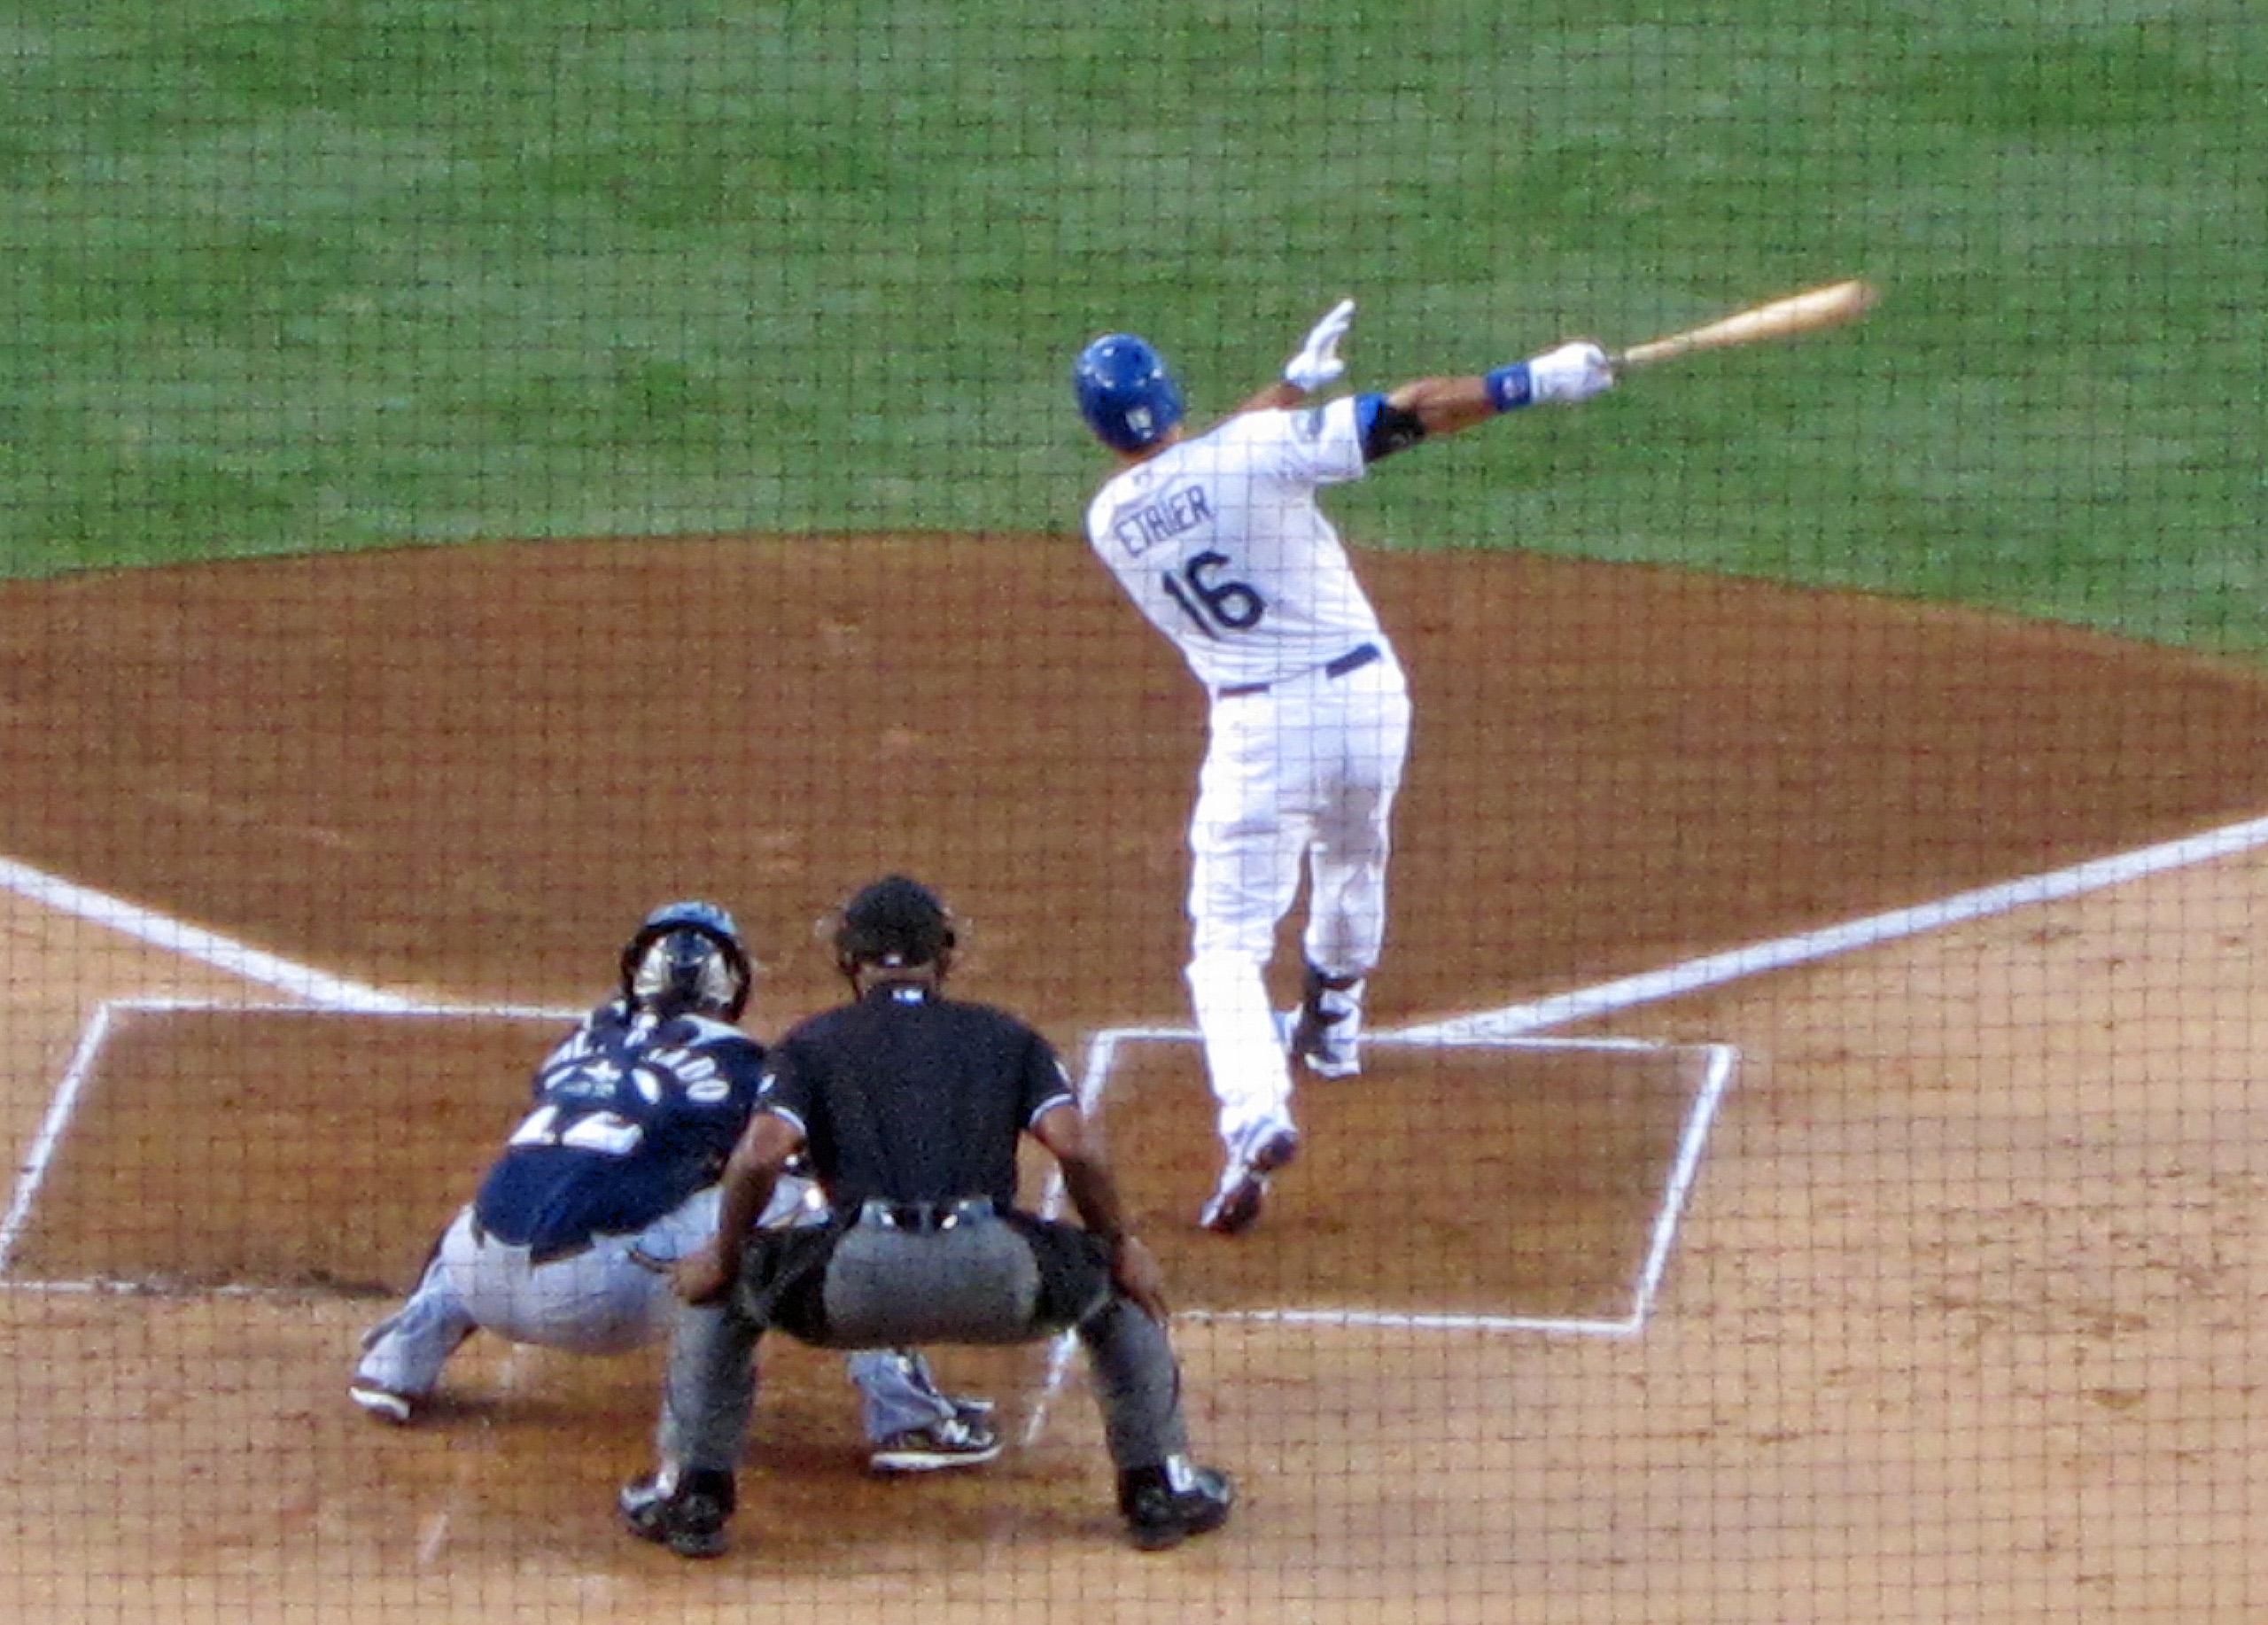 Overshadowed by Matt Kemp, Andre Ethier is putting up MVP numbers of his own. Ethier knocked in Kemp from first base with this double to right/center to collect his NL leading 44th RBI. Unfortunately, this is also when Kemp re-injured his left hamstring which landed him back on the DL.